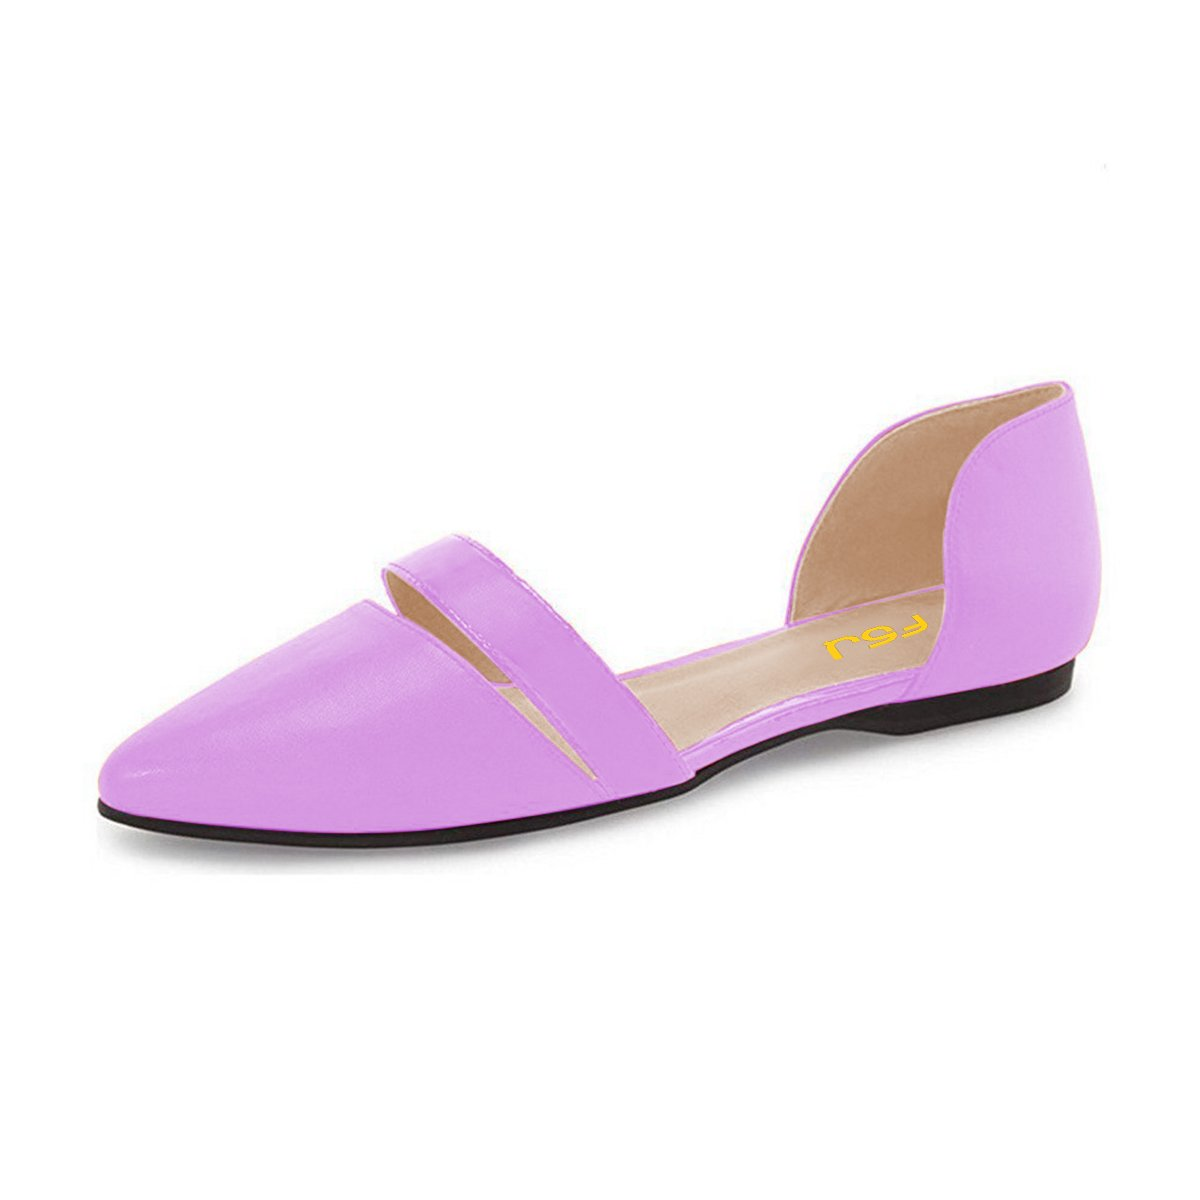 FSJ Women Cute D'Orsay Ballet Toe Flats for Comfort Pointed Toe Ballet Low Heels Dress Shoes Size 4-15 US B06Y4CTL7F 4 B(M) US|Purple 66a6d2